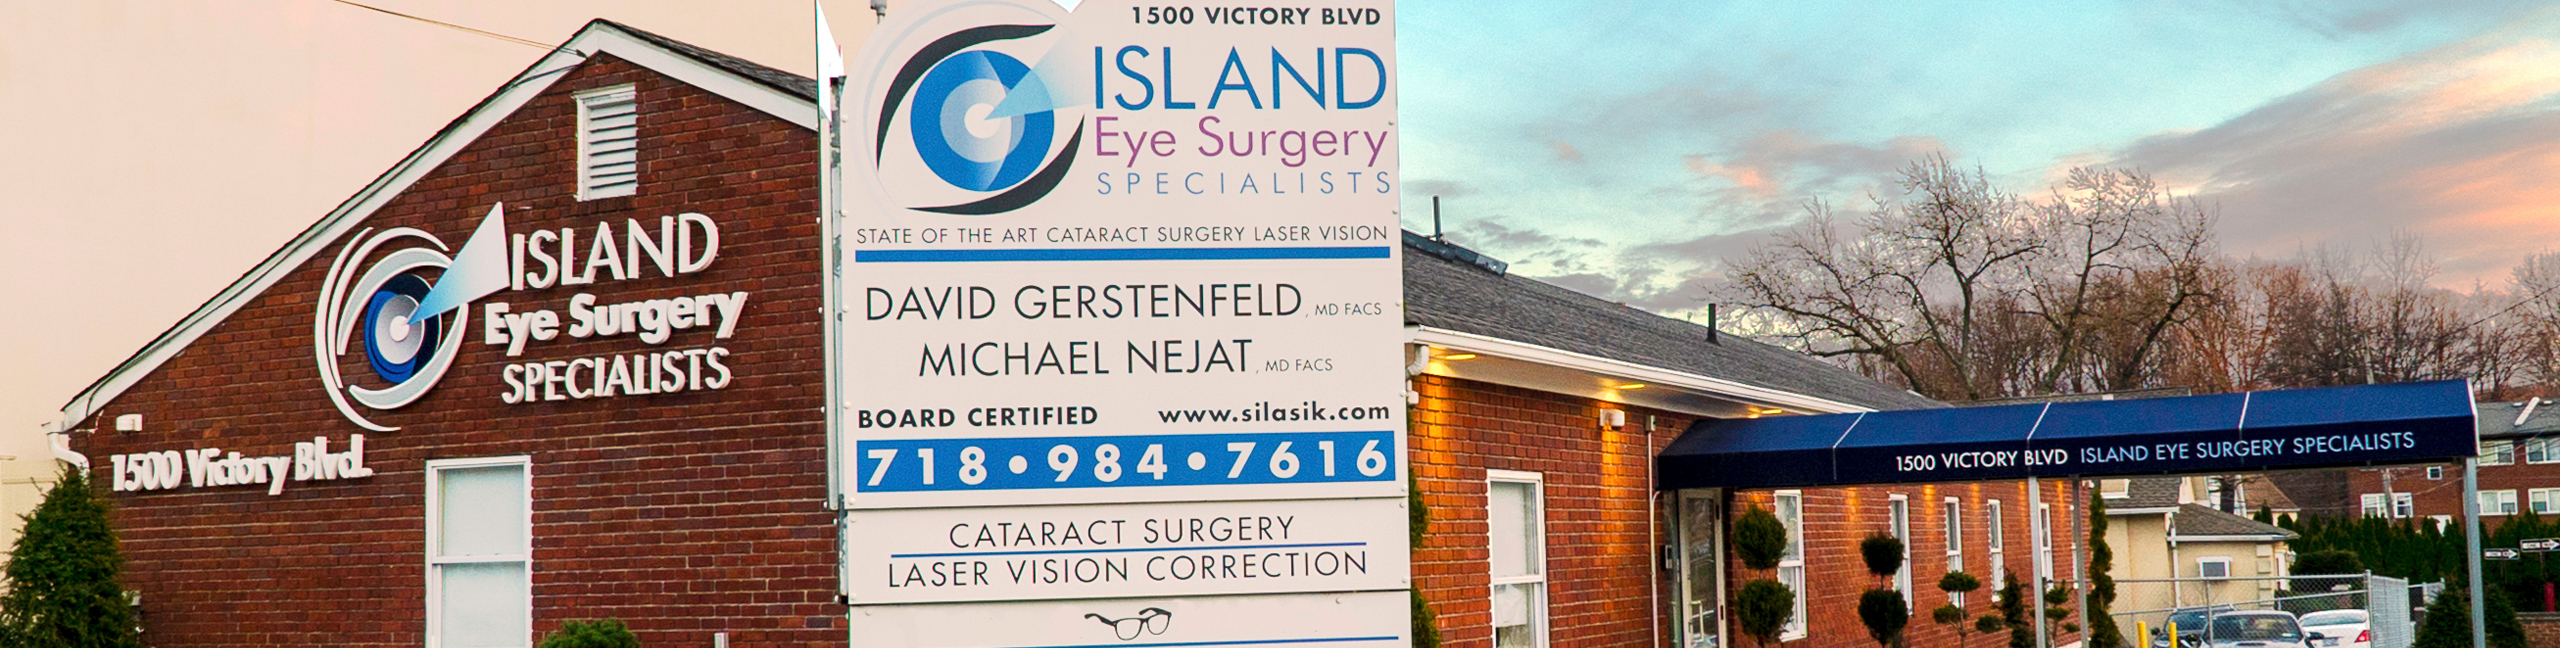 Island Eye Surgery Location